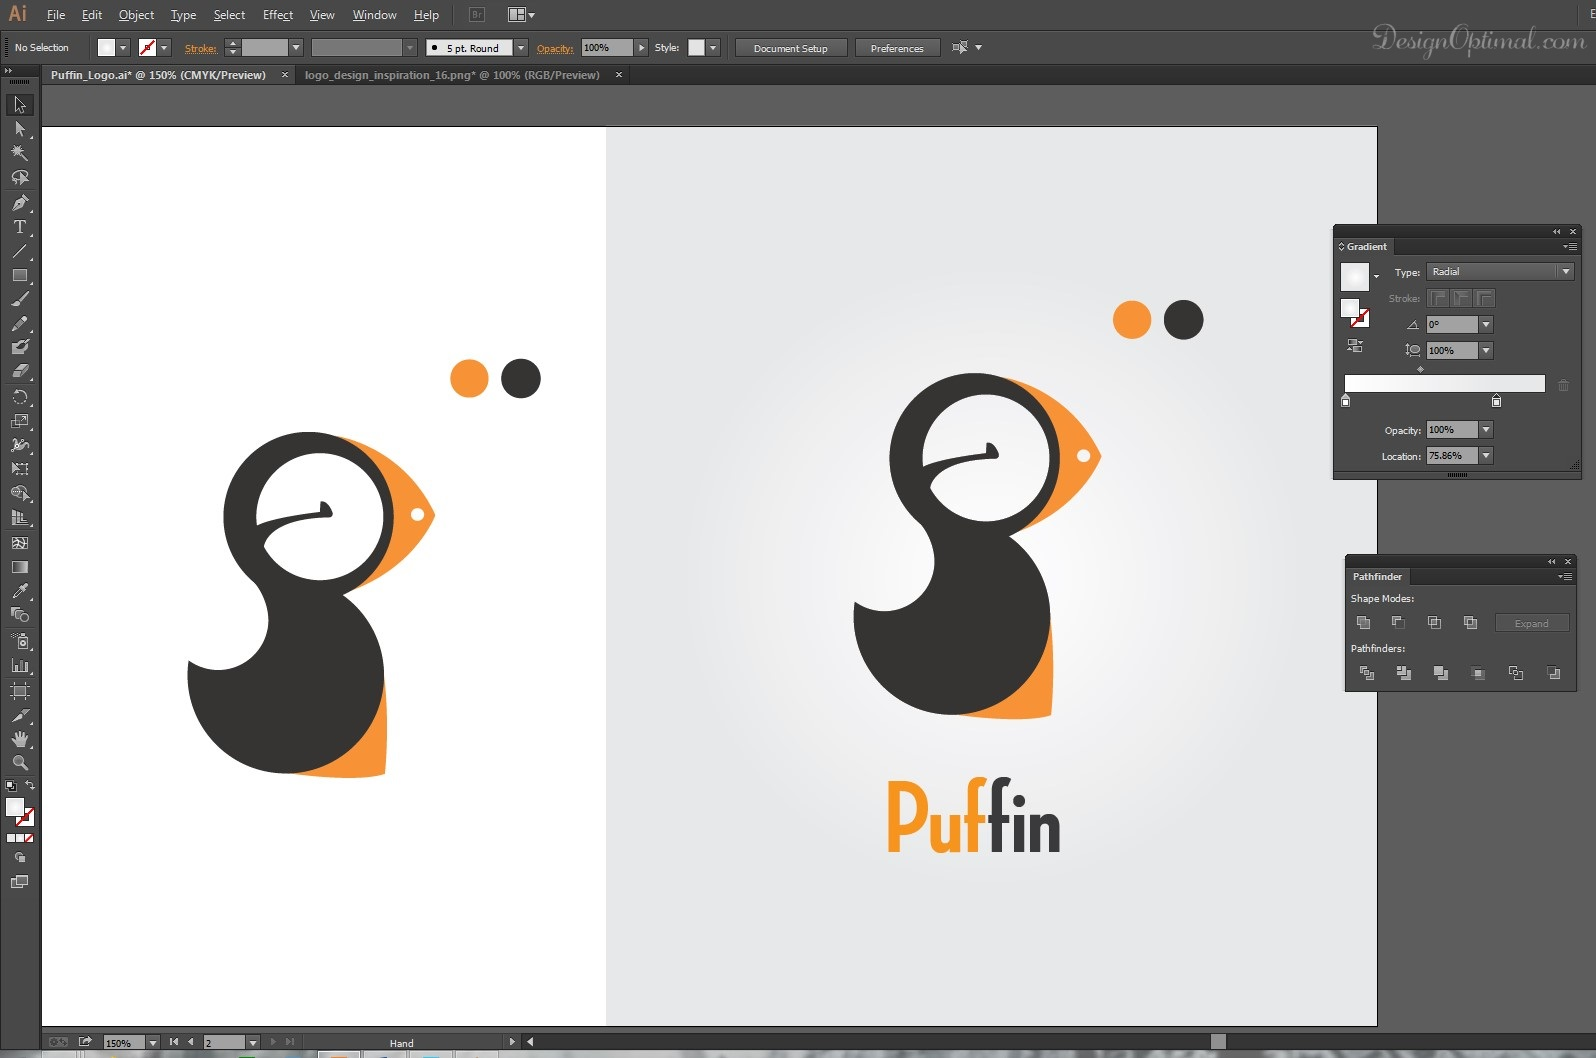 Logo Design From Concept to Finished Product